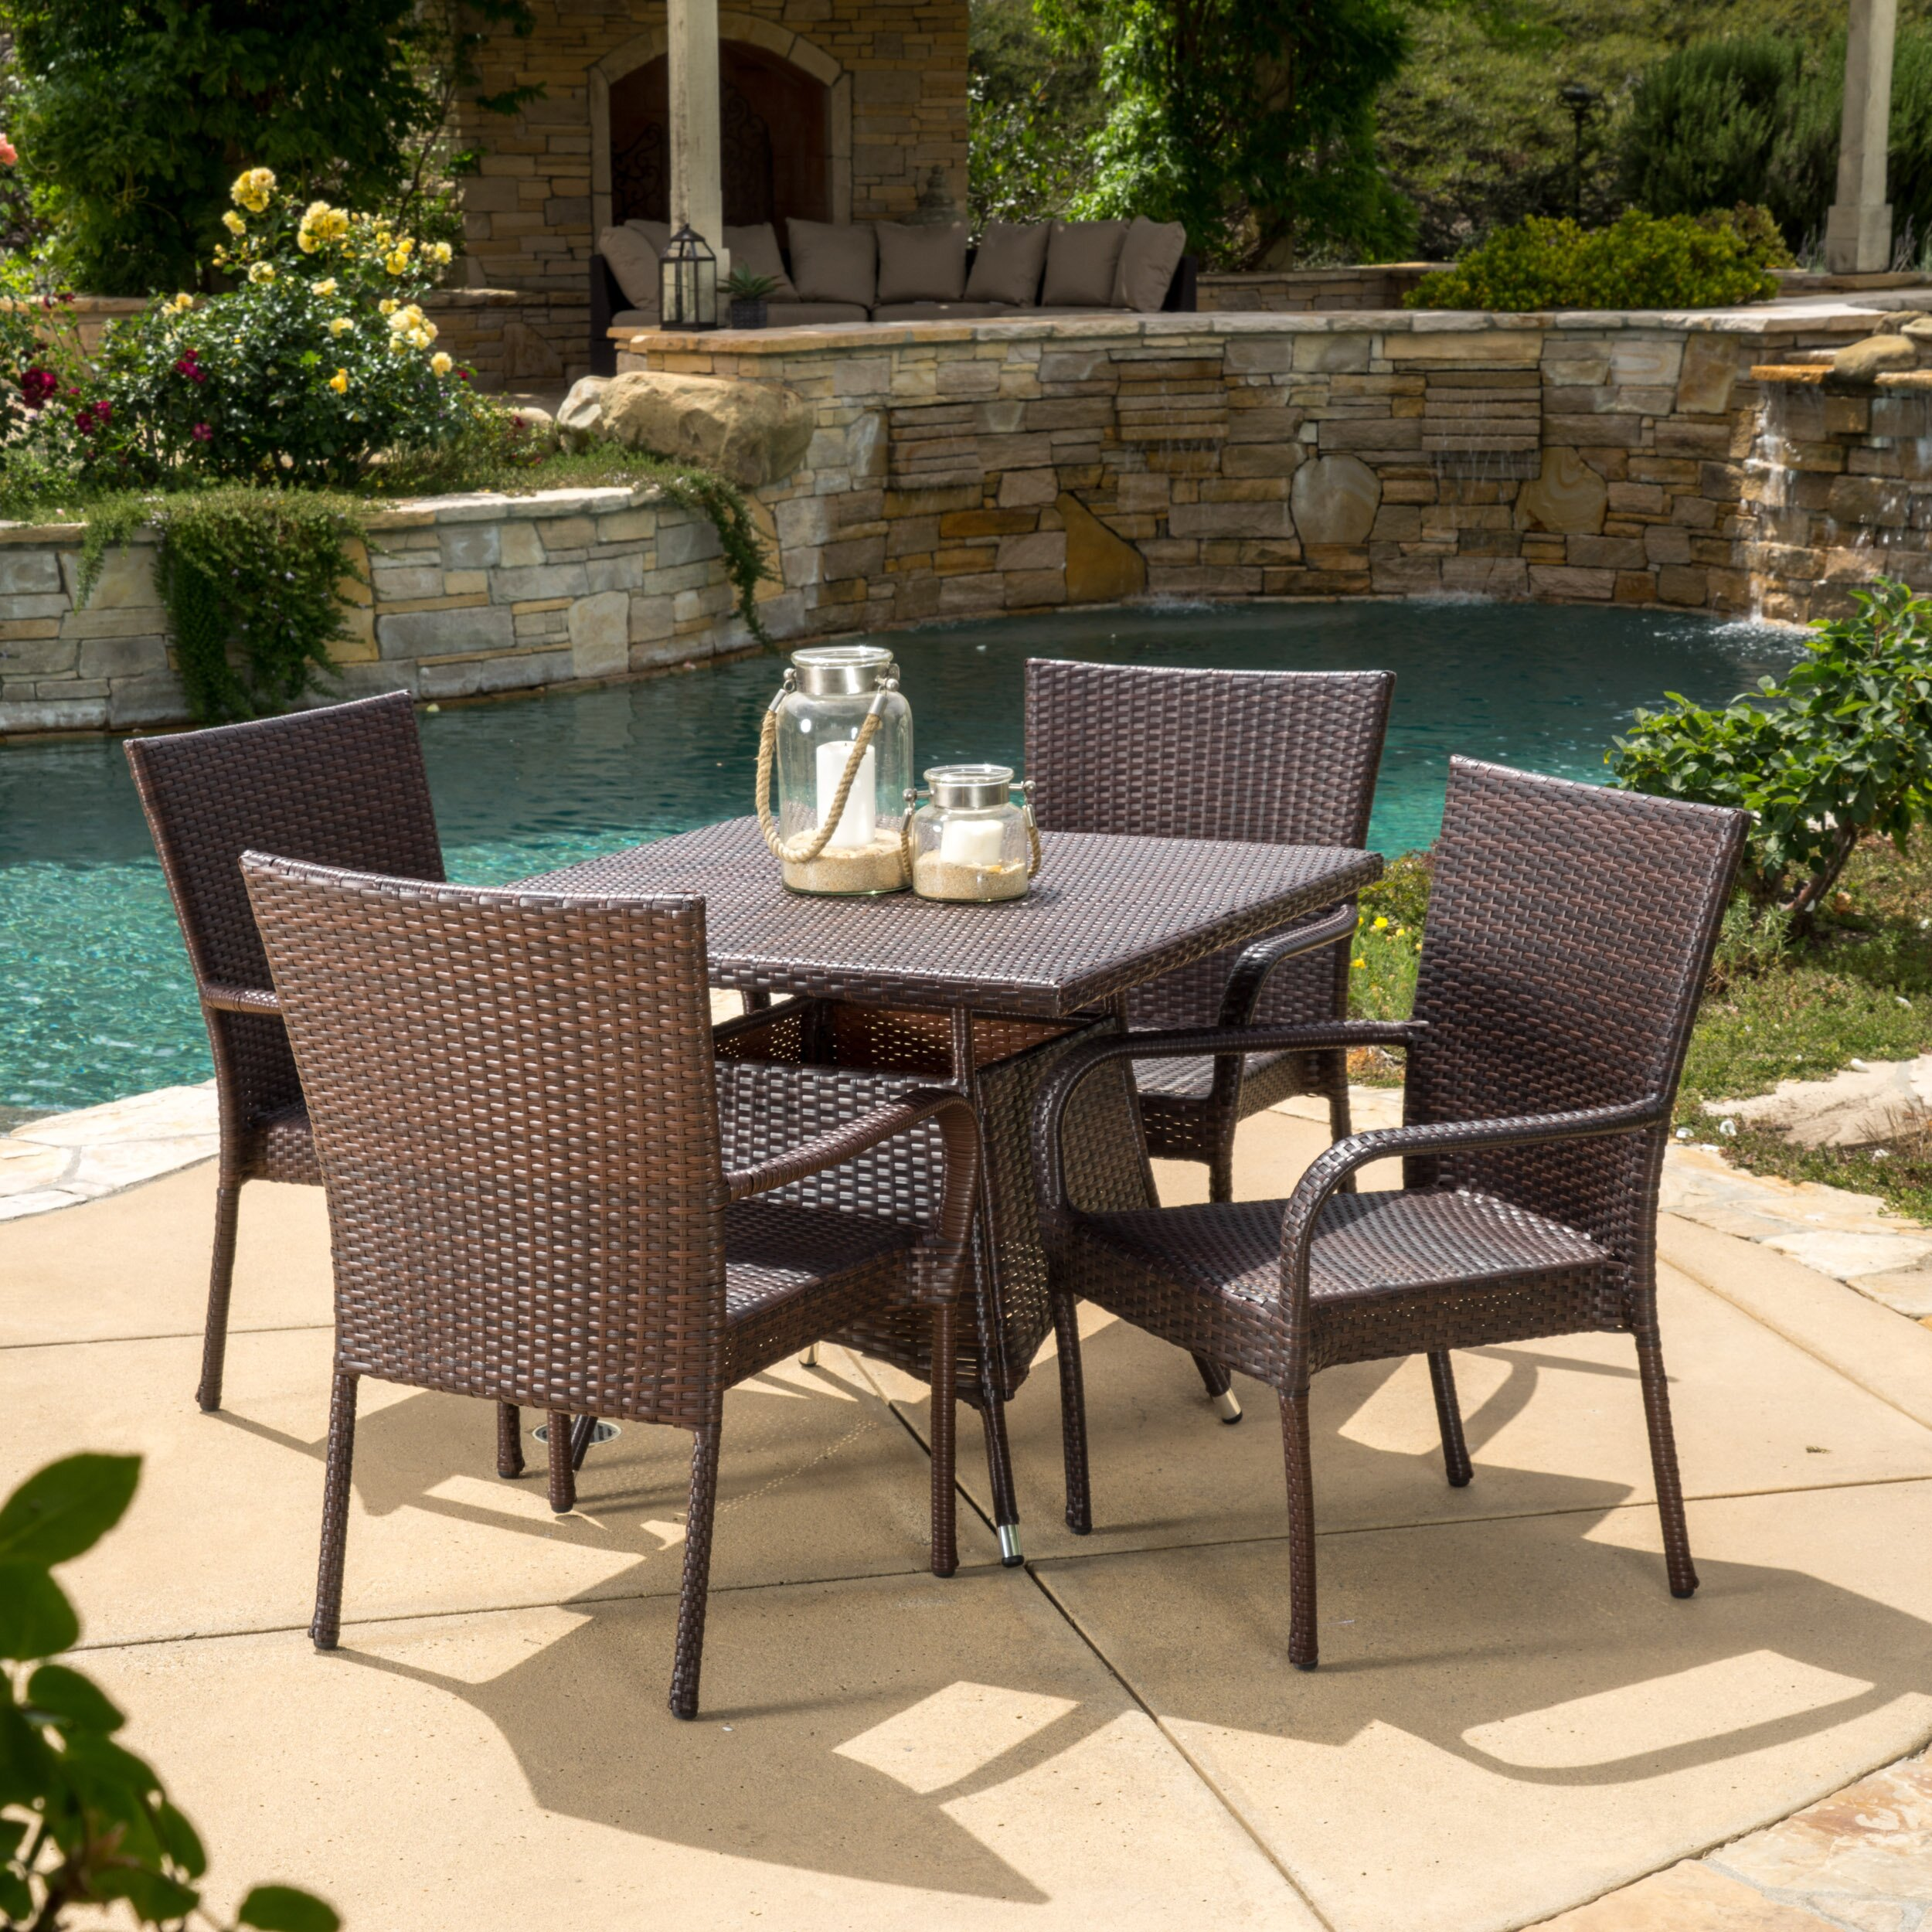 Brayden Studio Geren 5 Piece Dining Set Reviews Wayfair